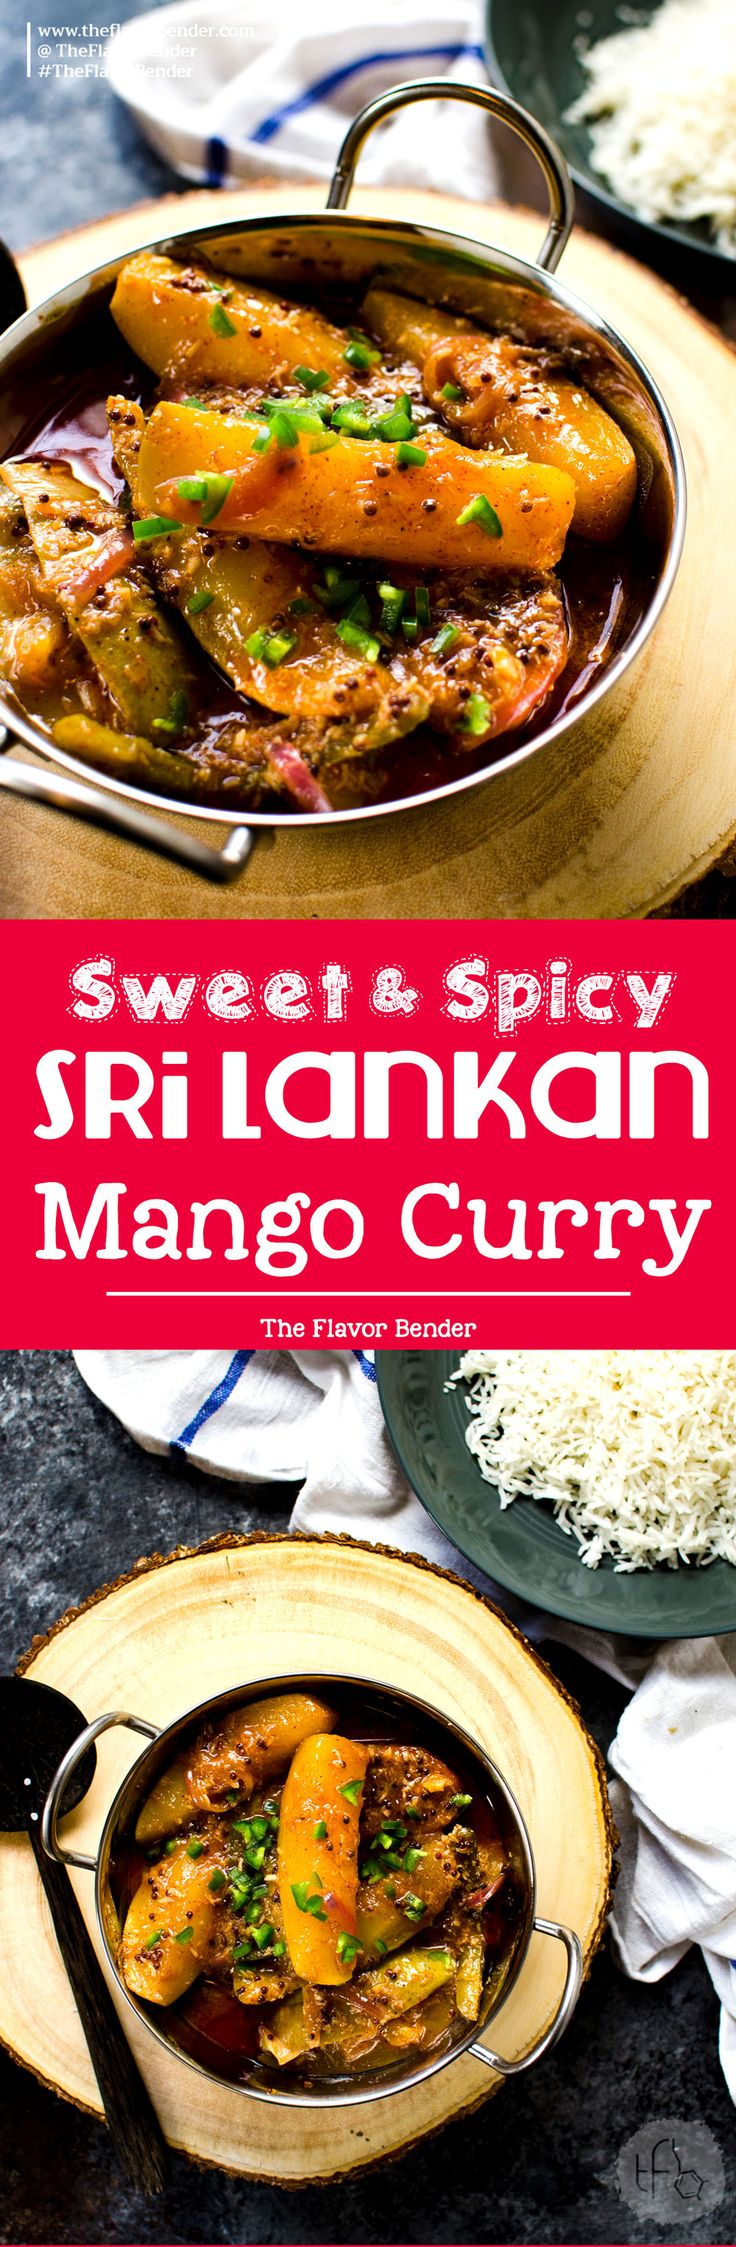 Sri Lankan Mango Curry - An easy curry recipe that is sweet, sour and spicy. Vegan and Gluten free and is absolutely amazing! A Sri Lankan favorite! via @theflavorbender (Vegetarian Recipes Easy)